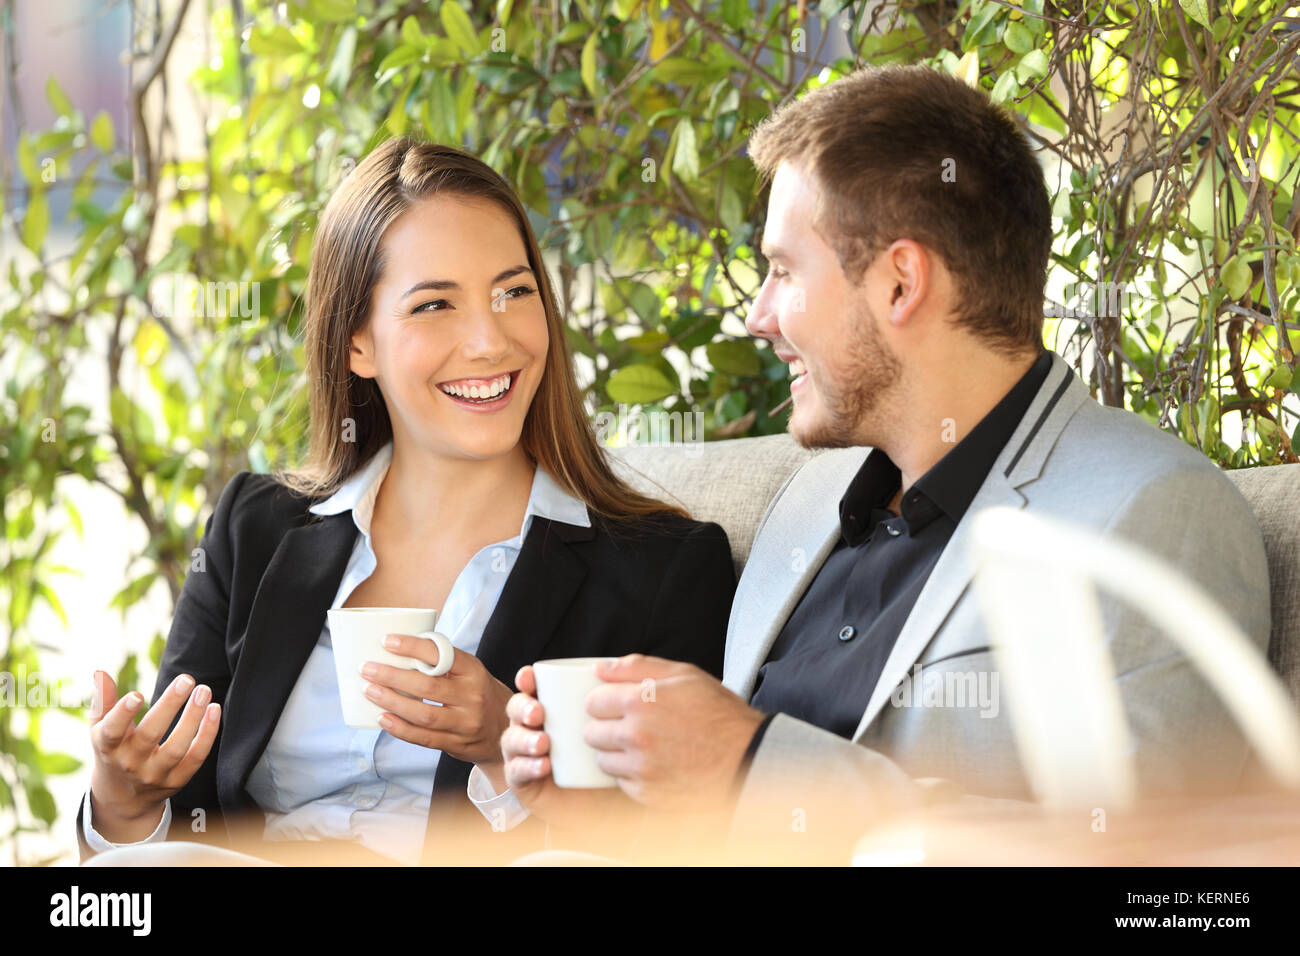 Two happy executives talking in a coffee break sitting in a bar terrace - Stock Image